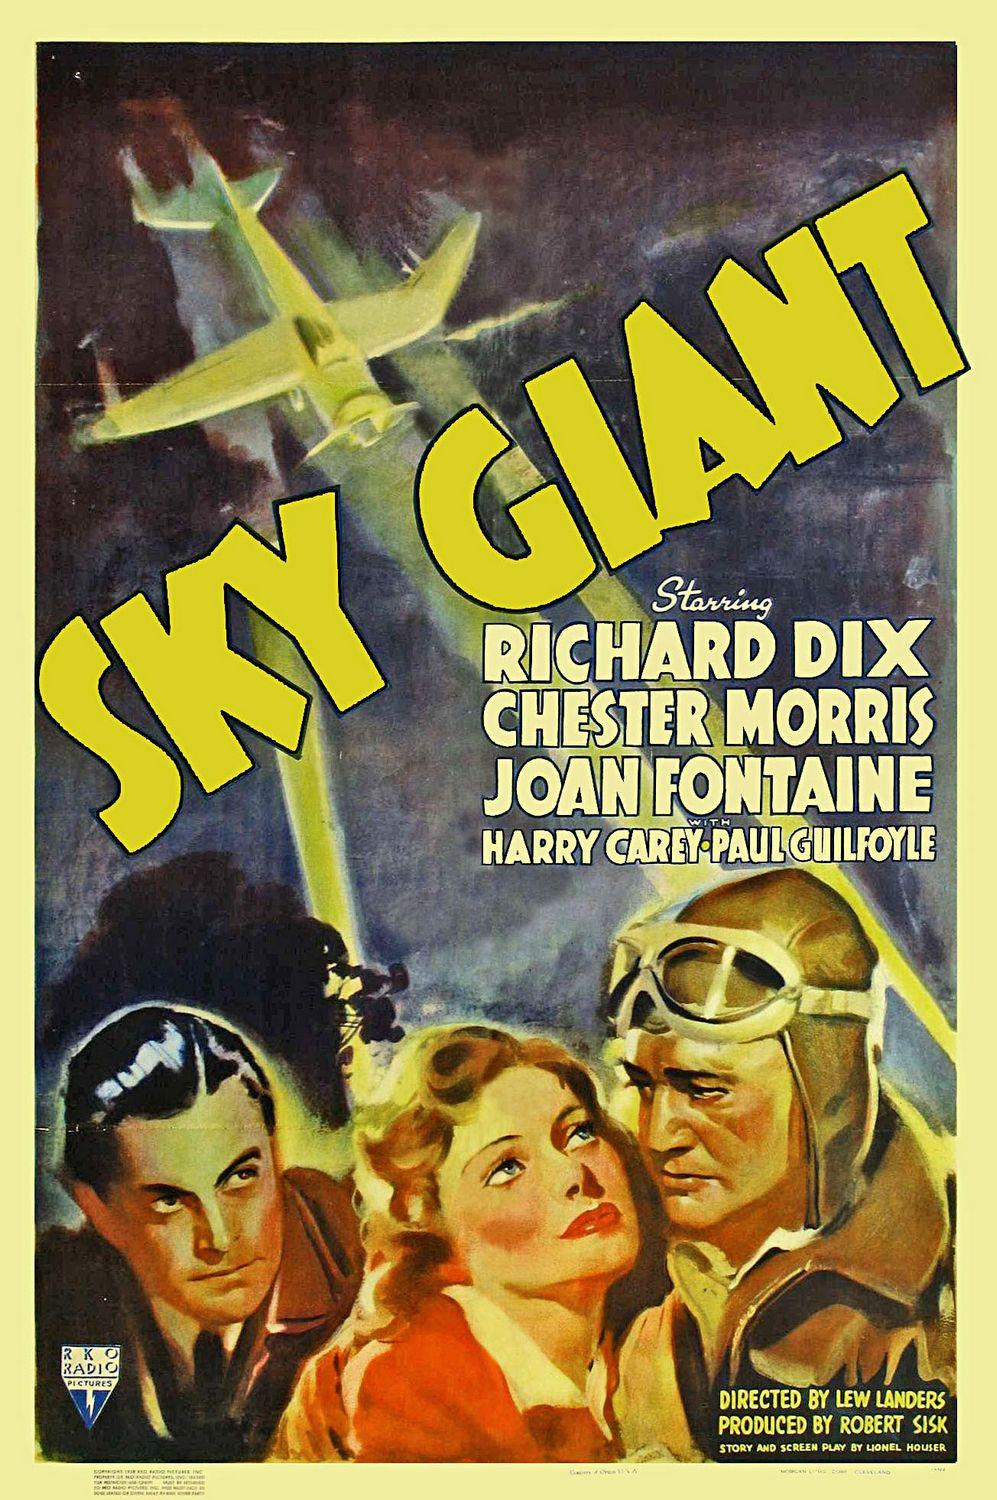 Sky giant - Richard Dix - Chester Morris - Joan Fontaine - Harry Carey - Paul Guilfoyle